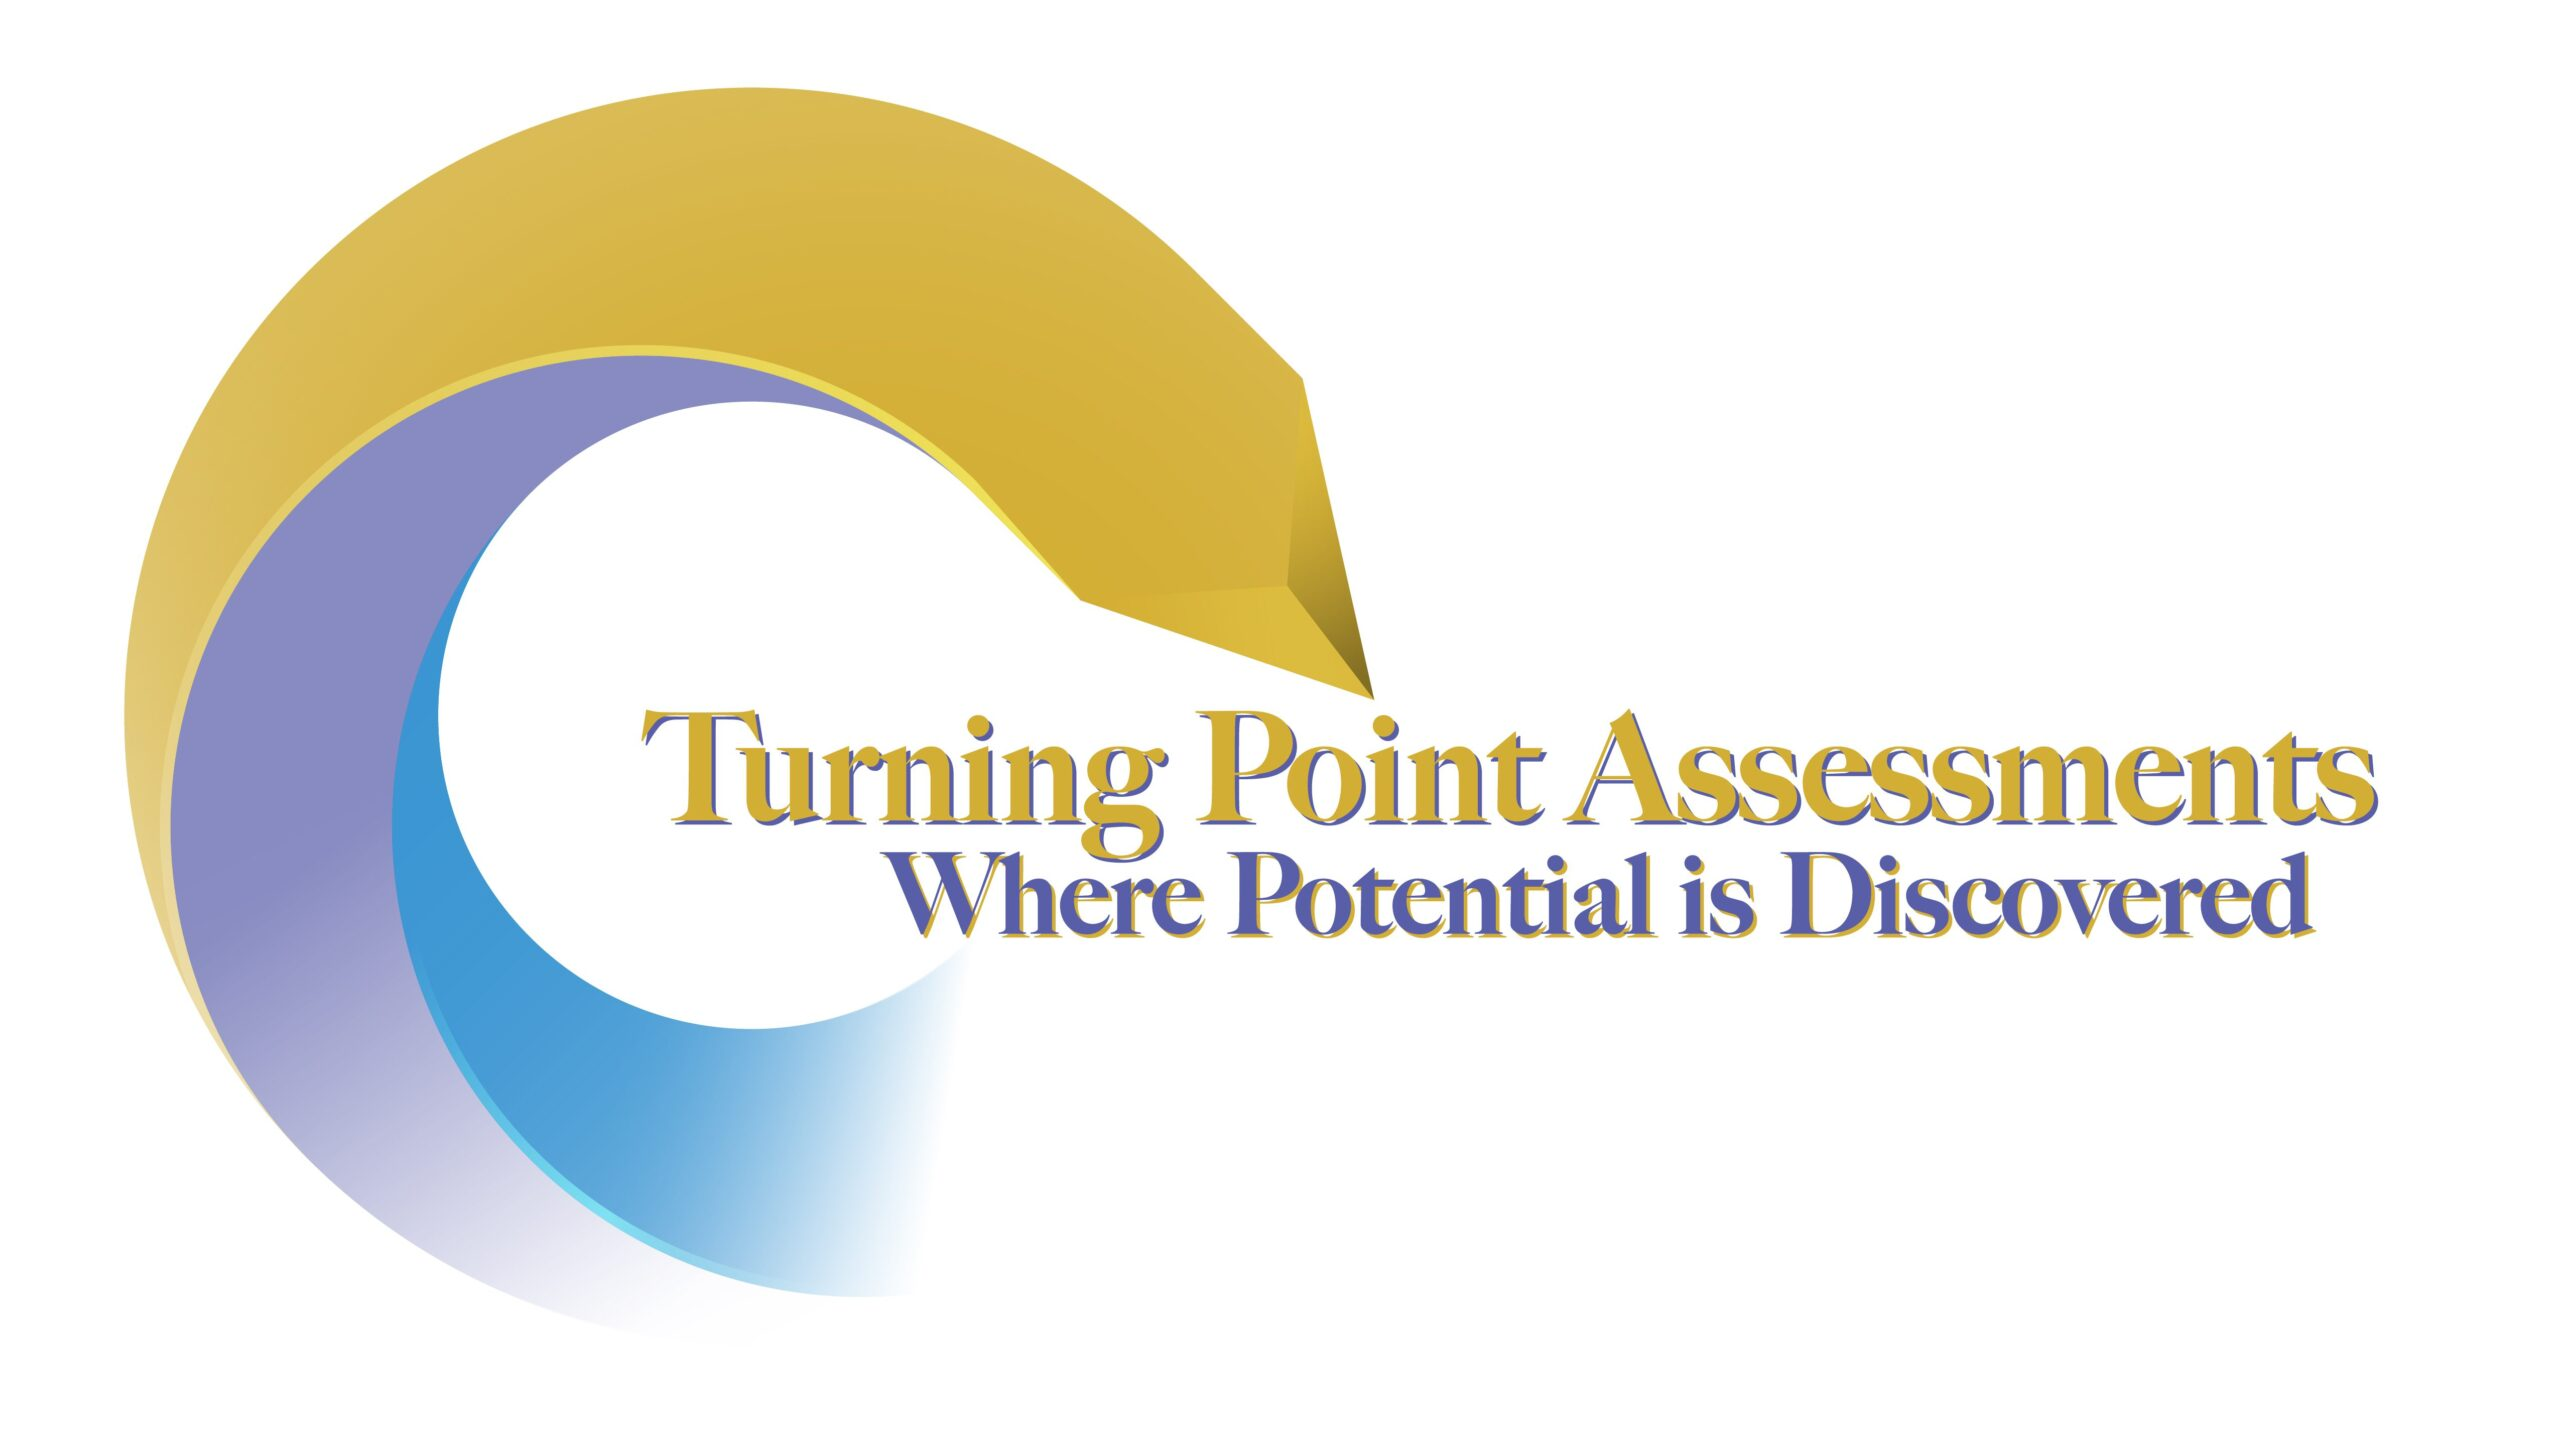 Turning Point Assessments